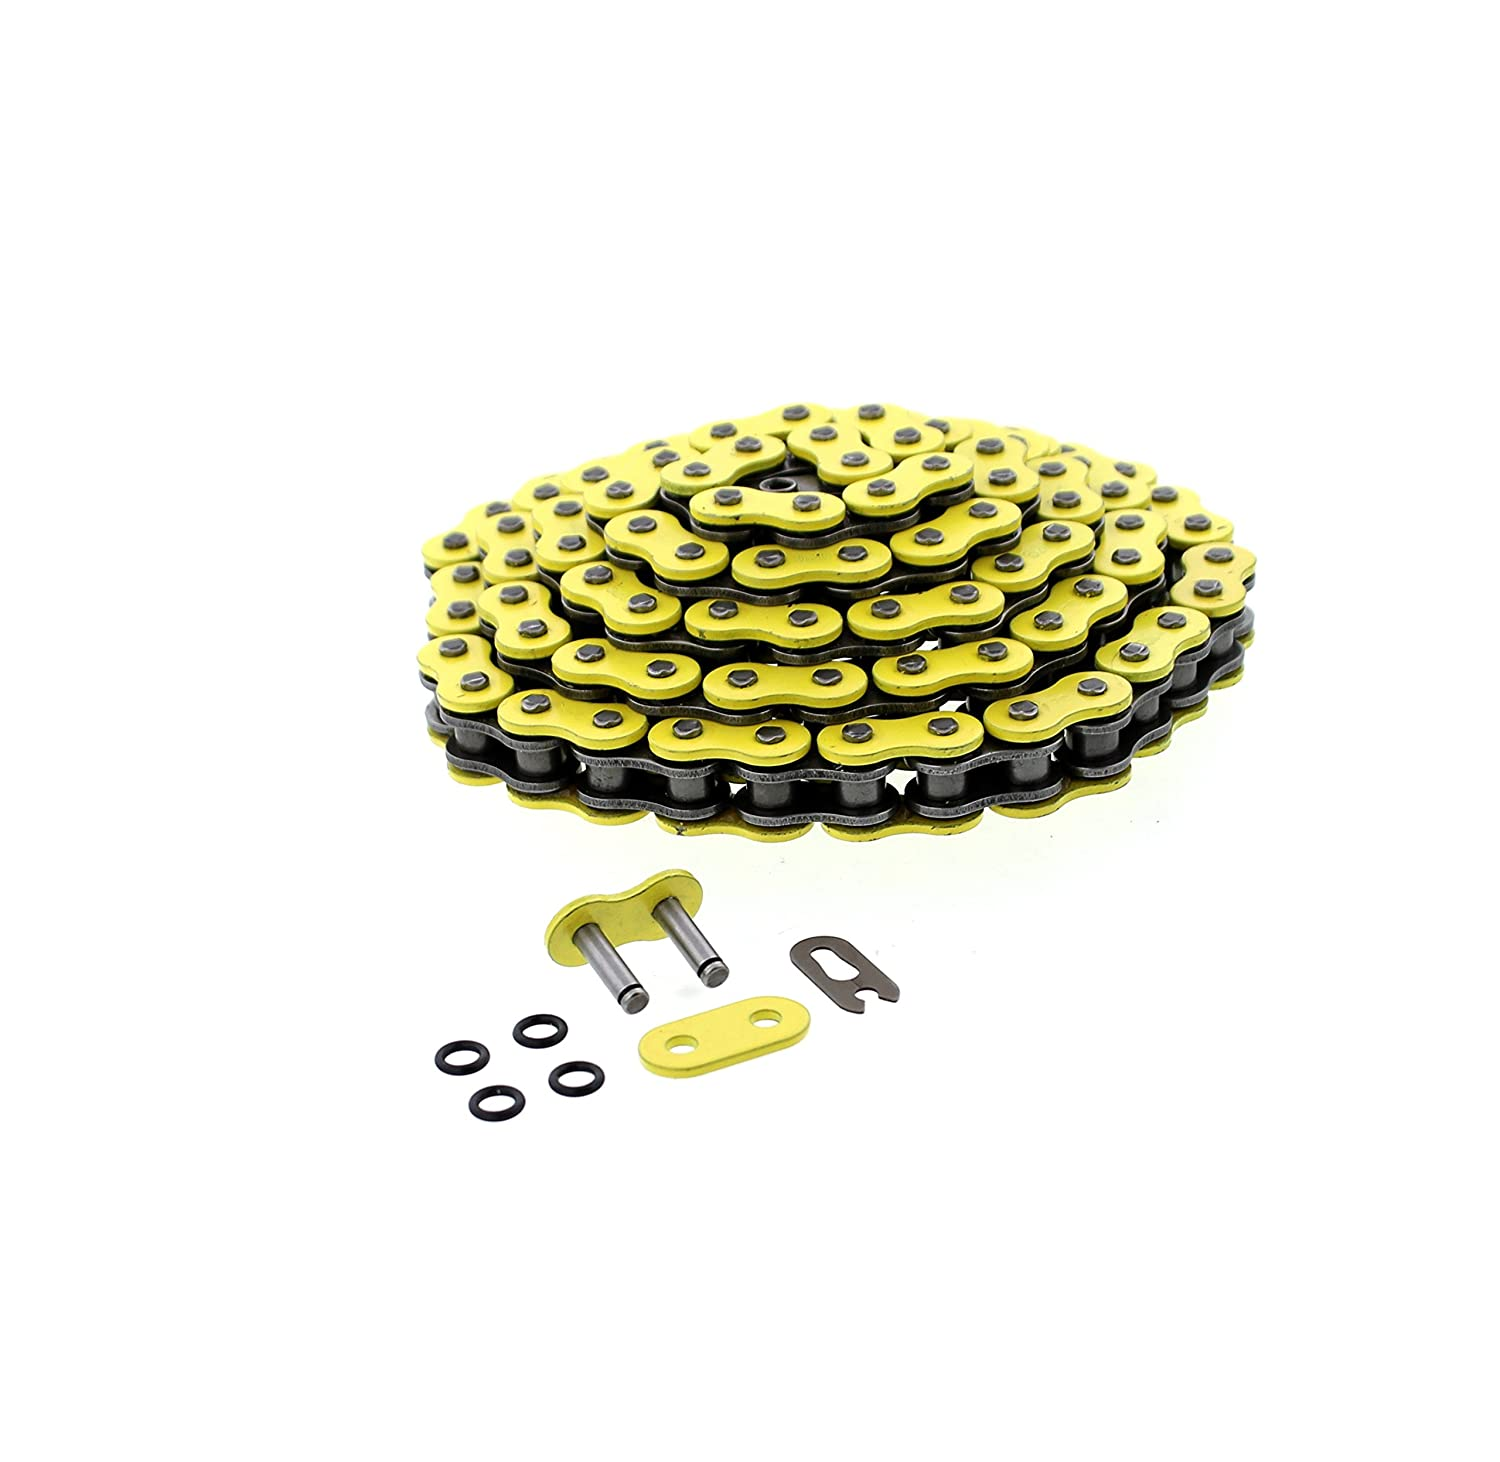 Yellow O-Ring Chain /& Silver Sprocket 12//40 100L 2004-2007 fits Yamaha YFZ450 YFZ 450